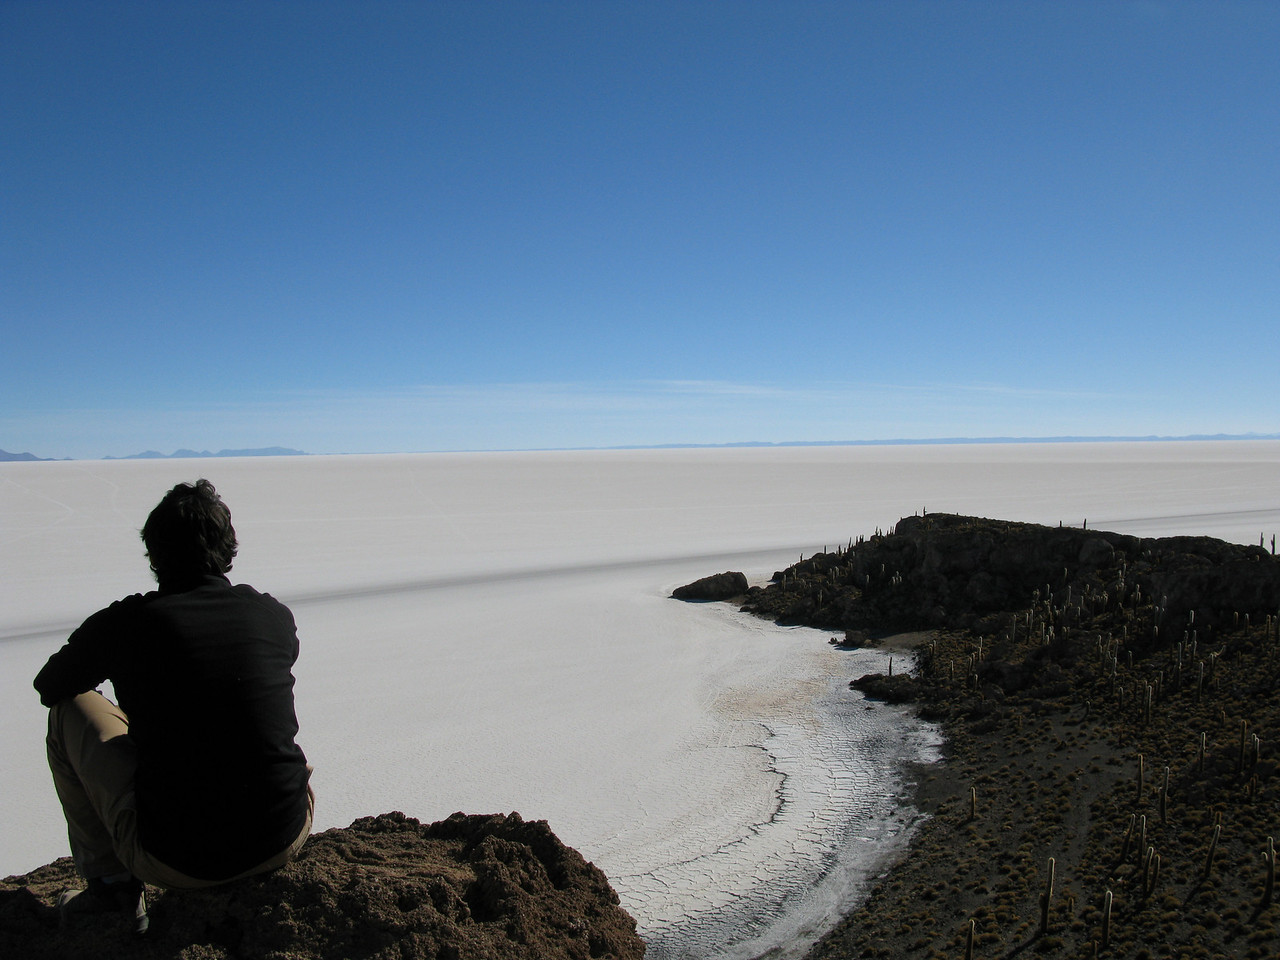 1.5 hours to drive from one end of the salt flats to the other